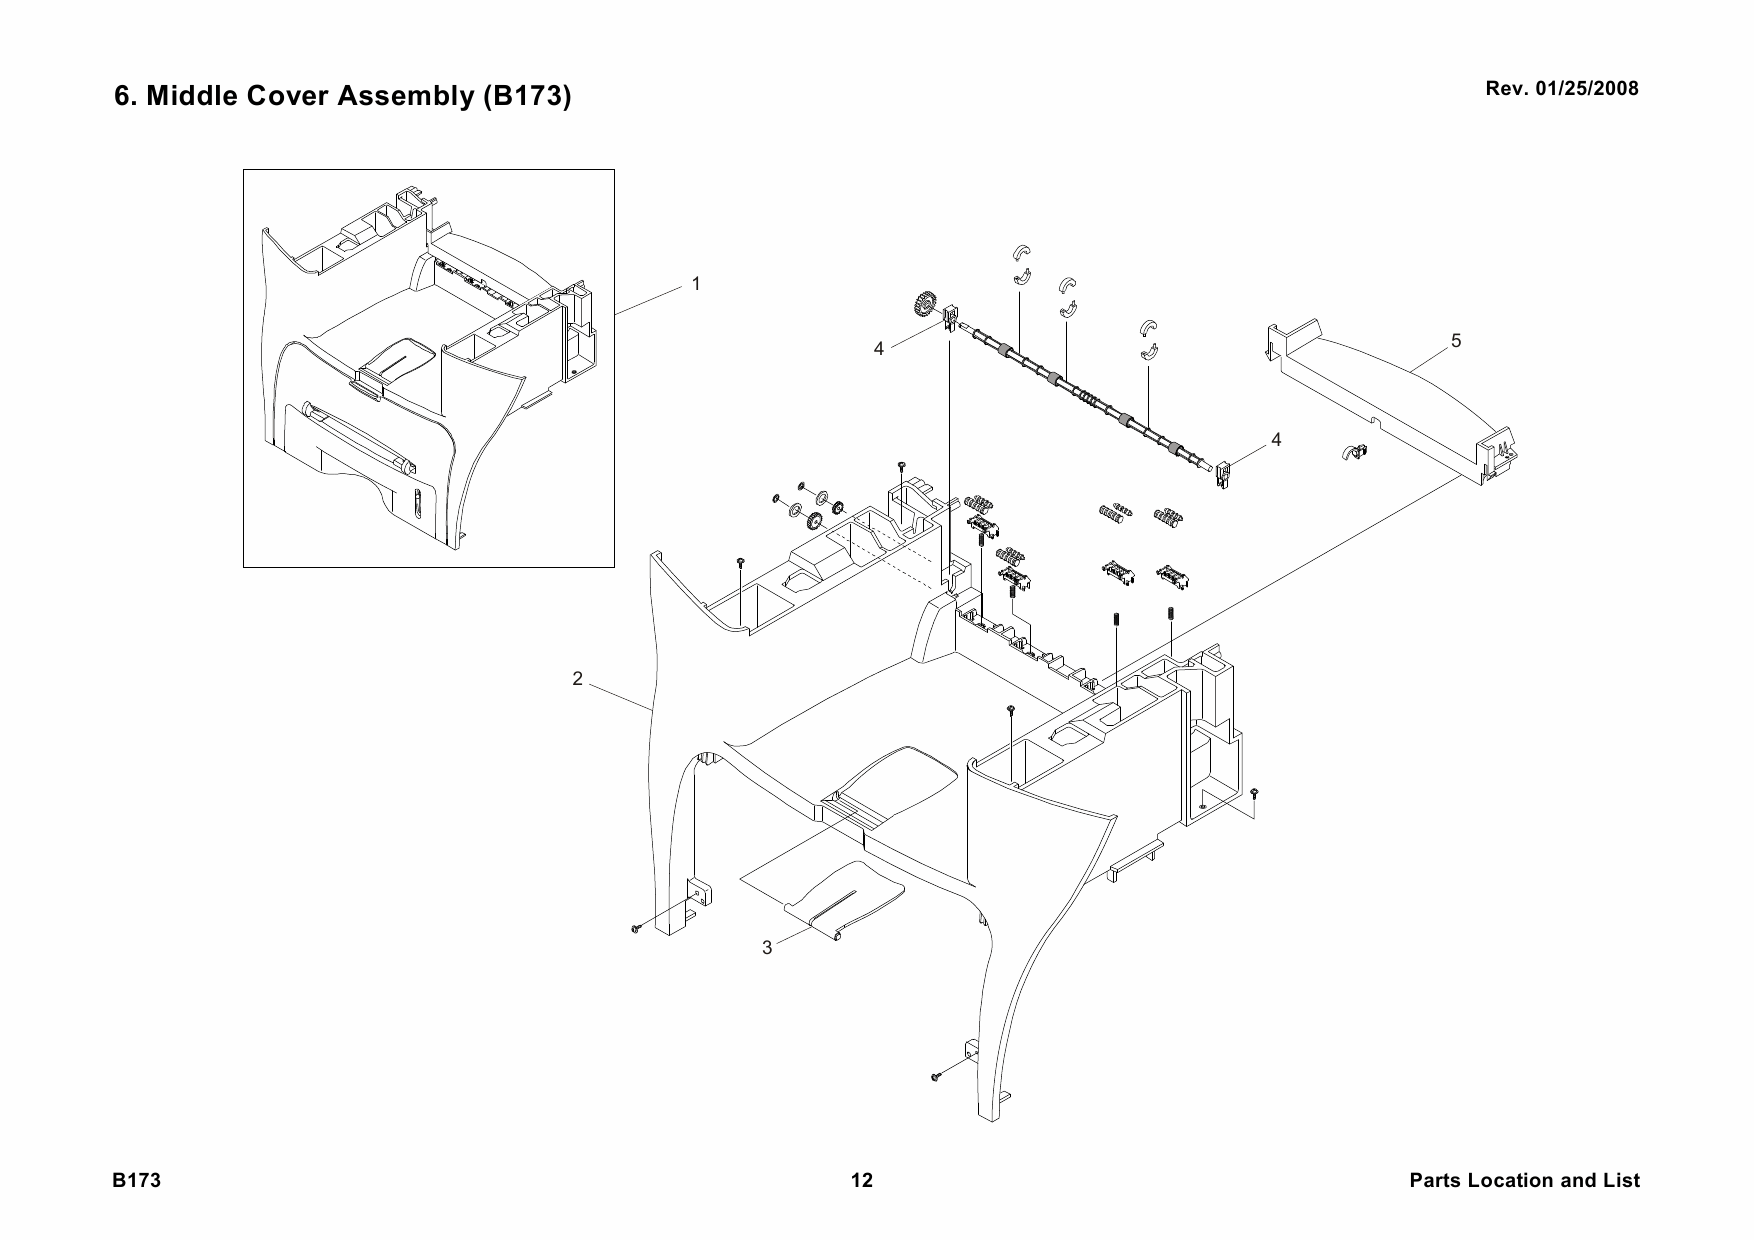 RICOH Aficio AC104 B173 Parts Catalog